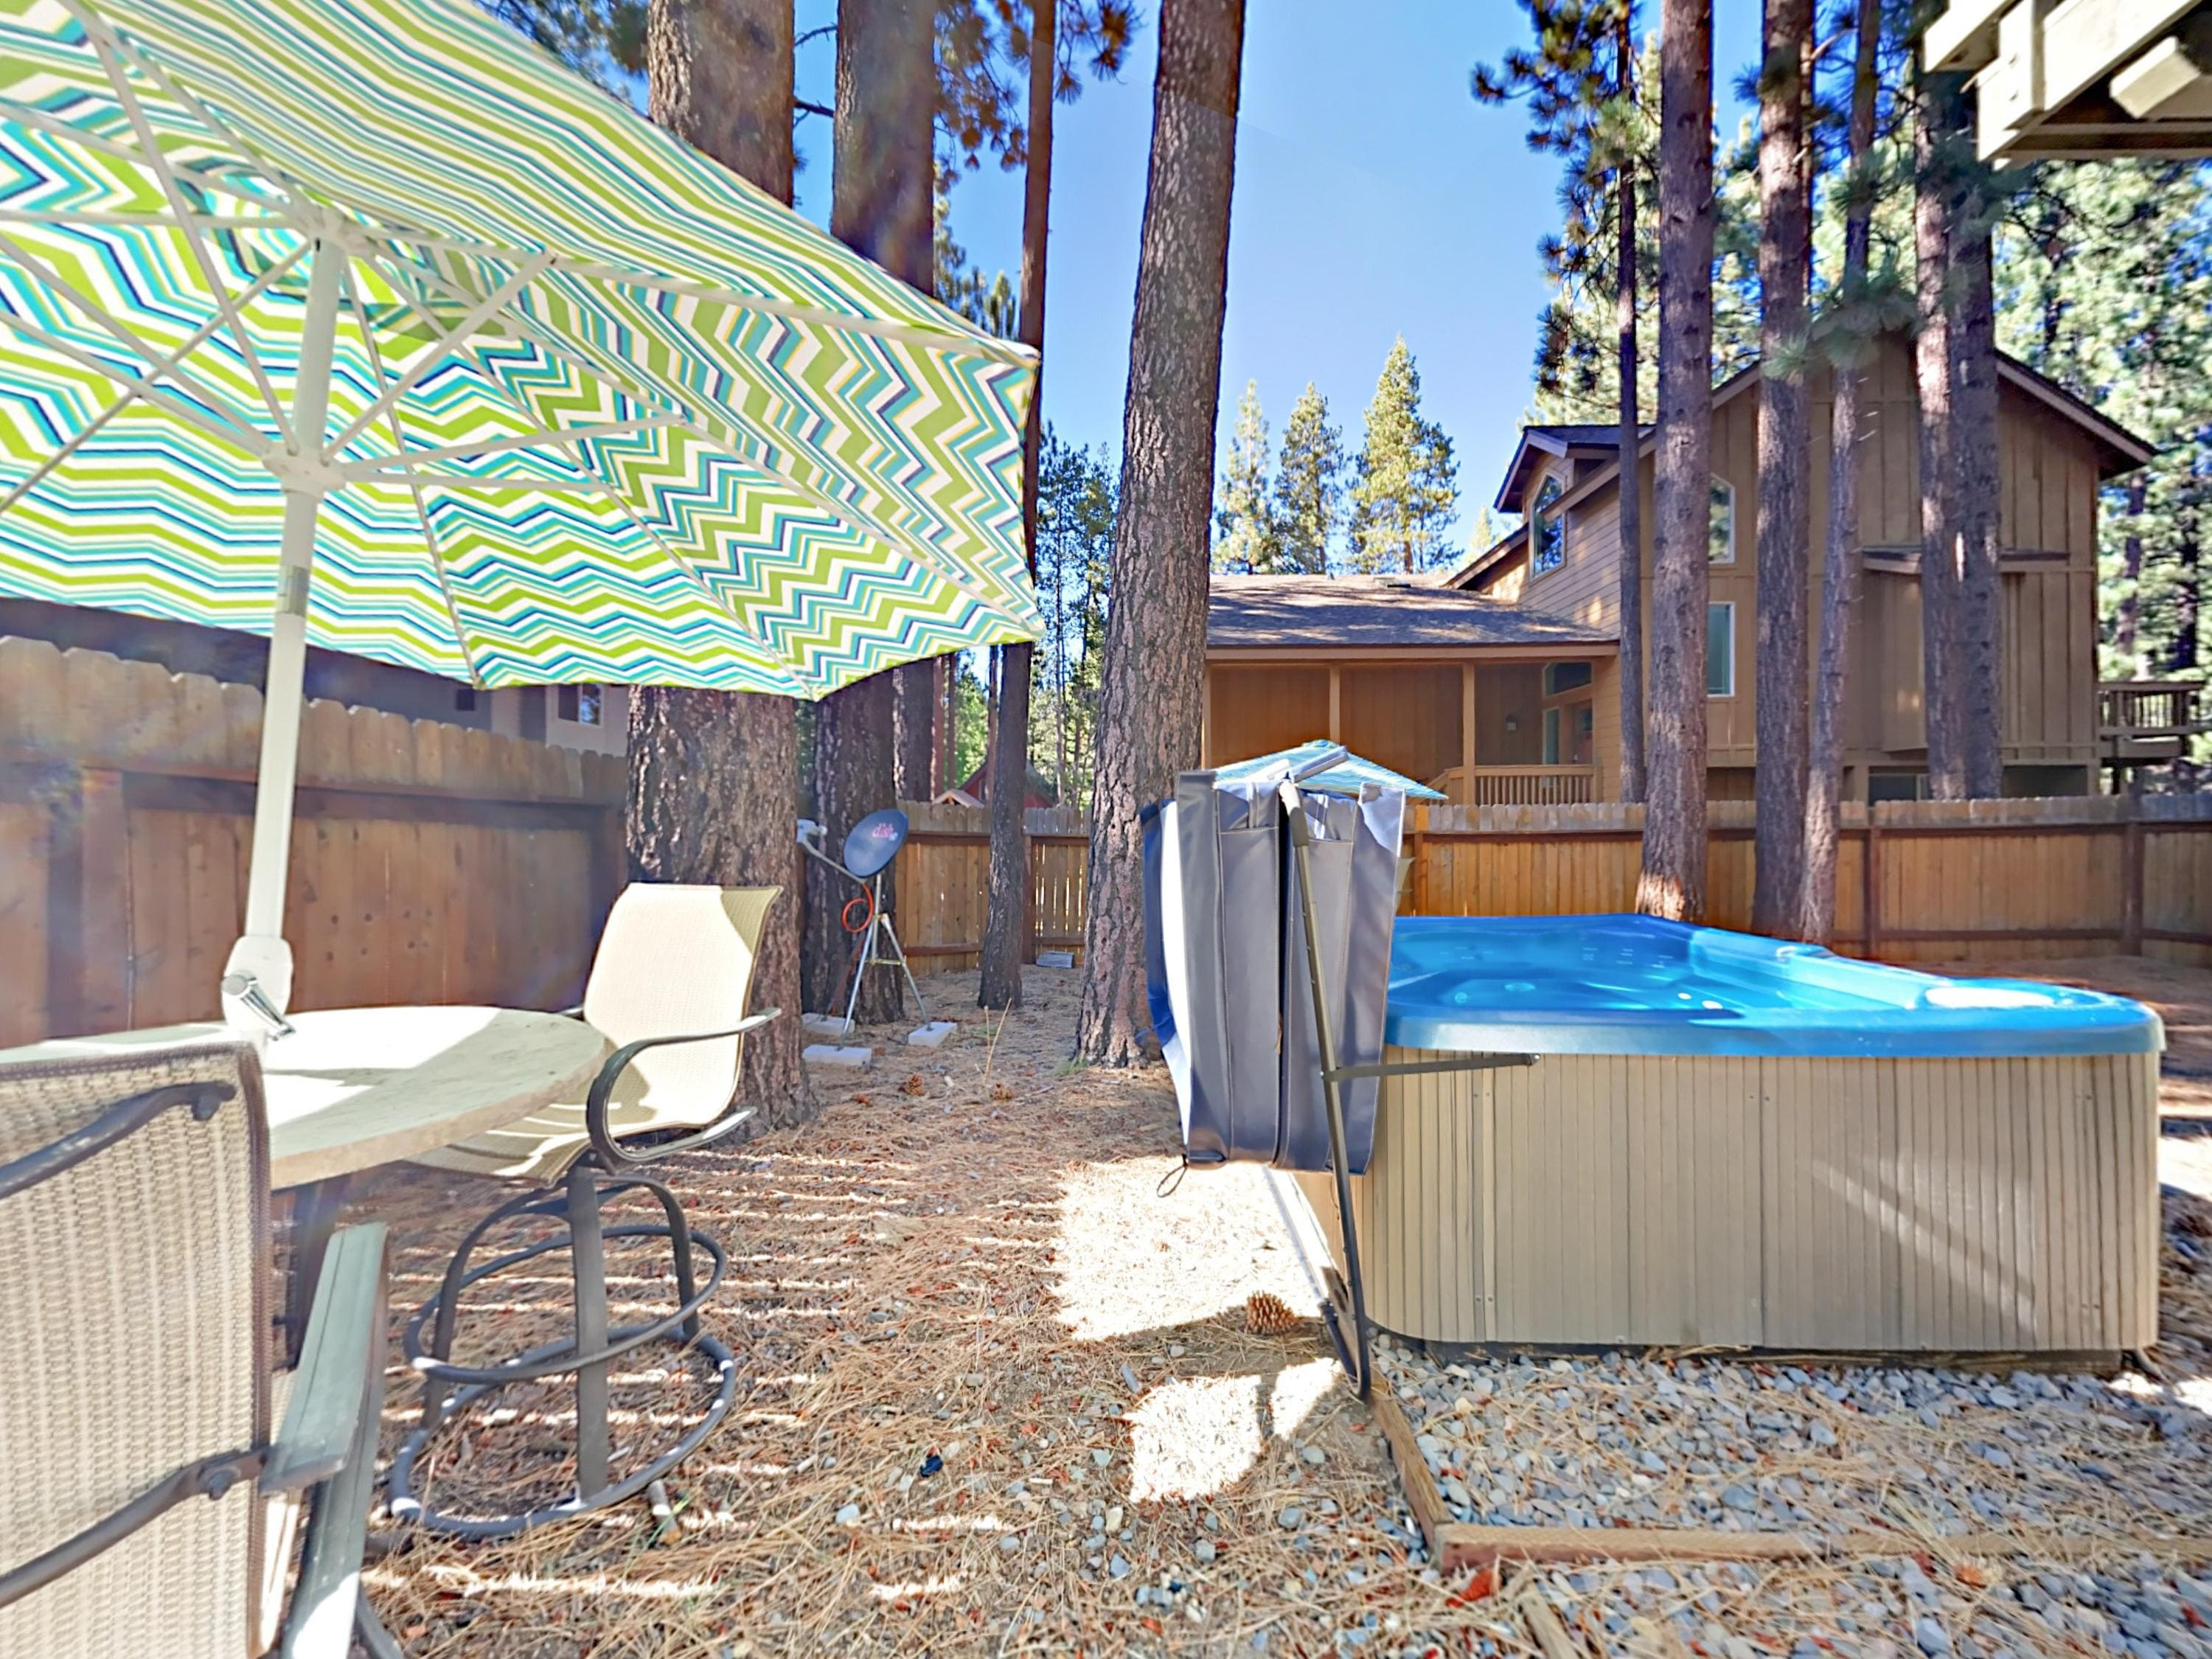 Unwind in the backyard hot tub or at the shaded patio table.